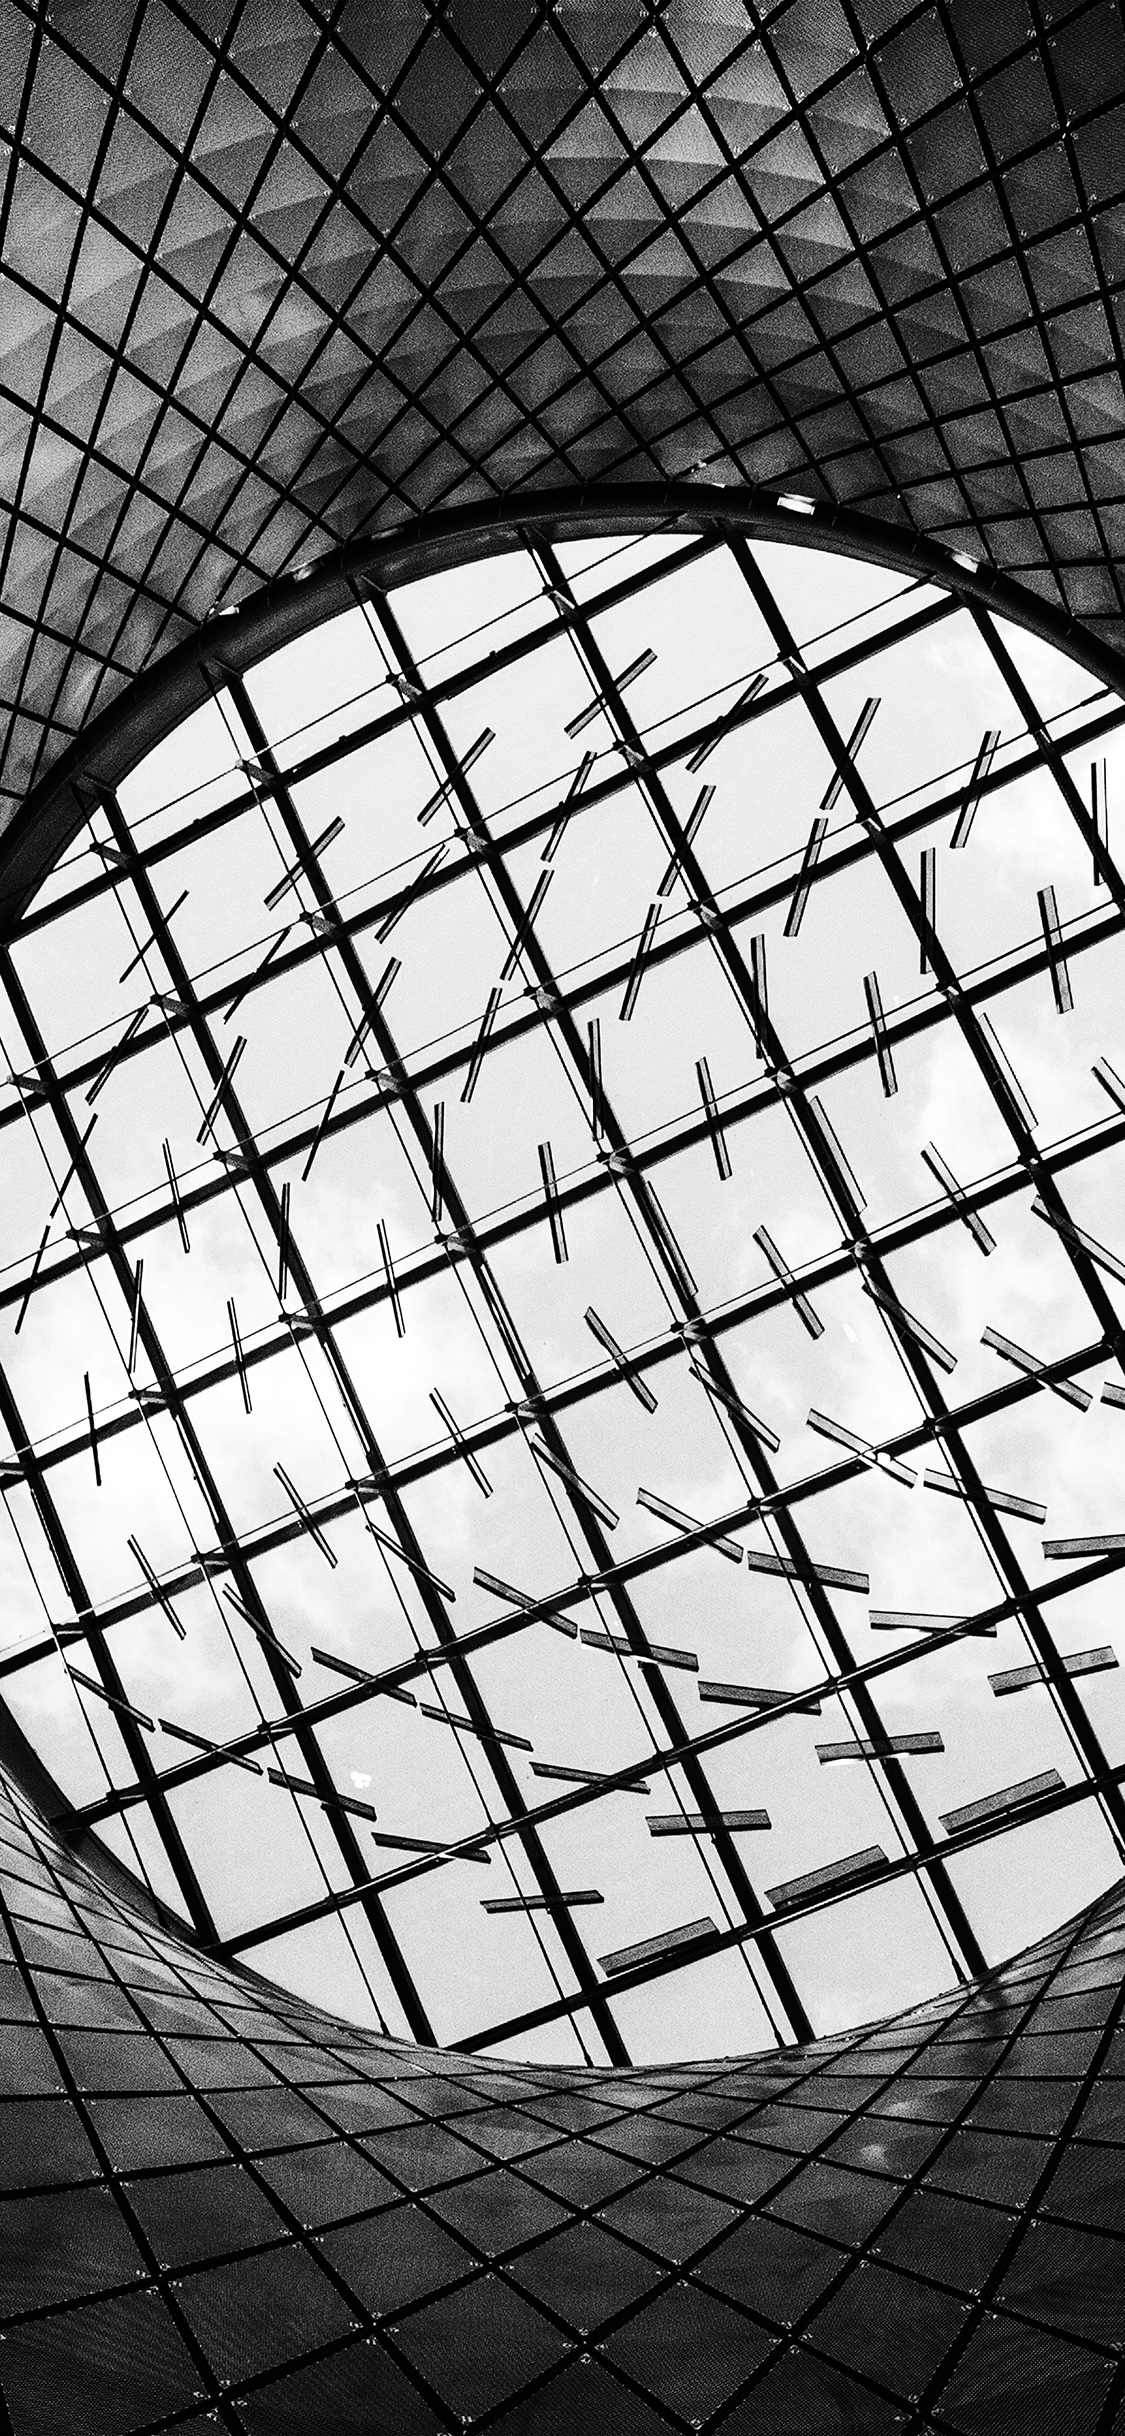 Nh84 Architecture Building Pattern Dark Bw